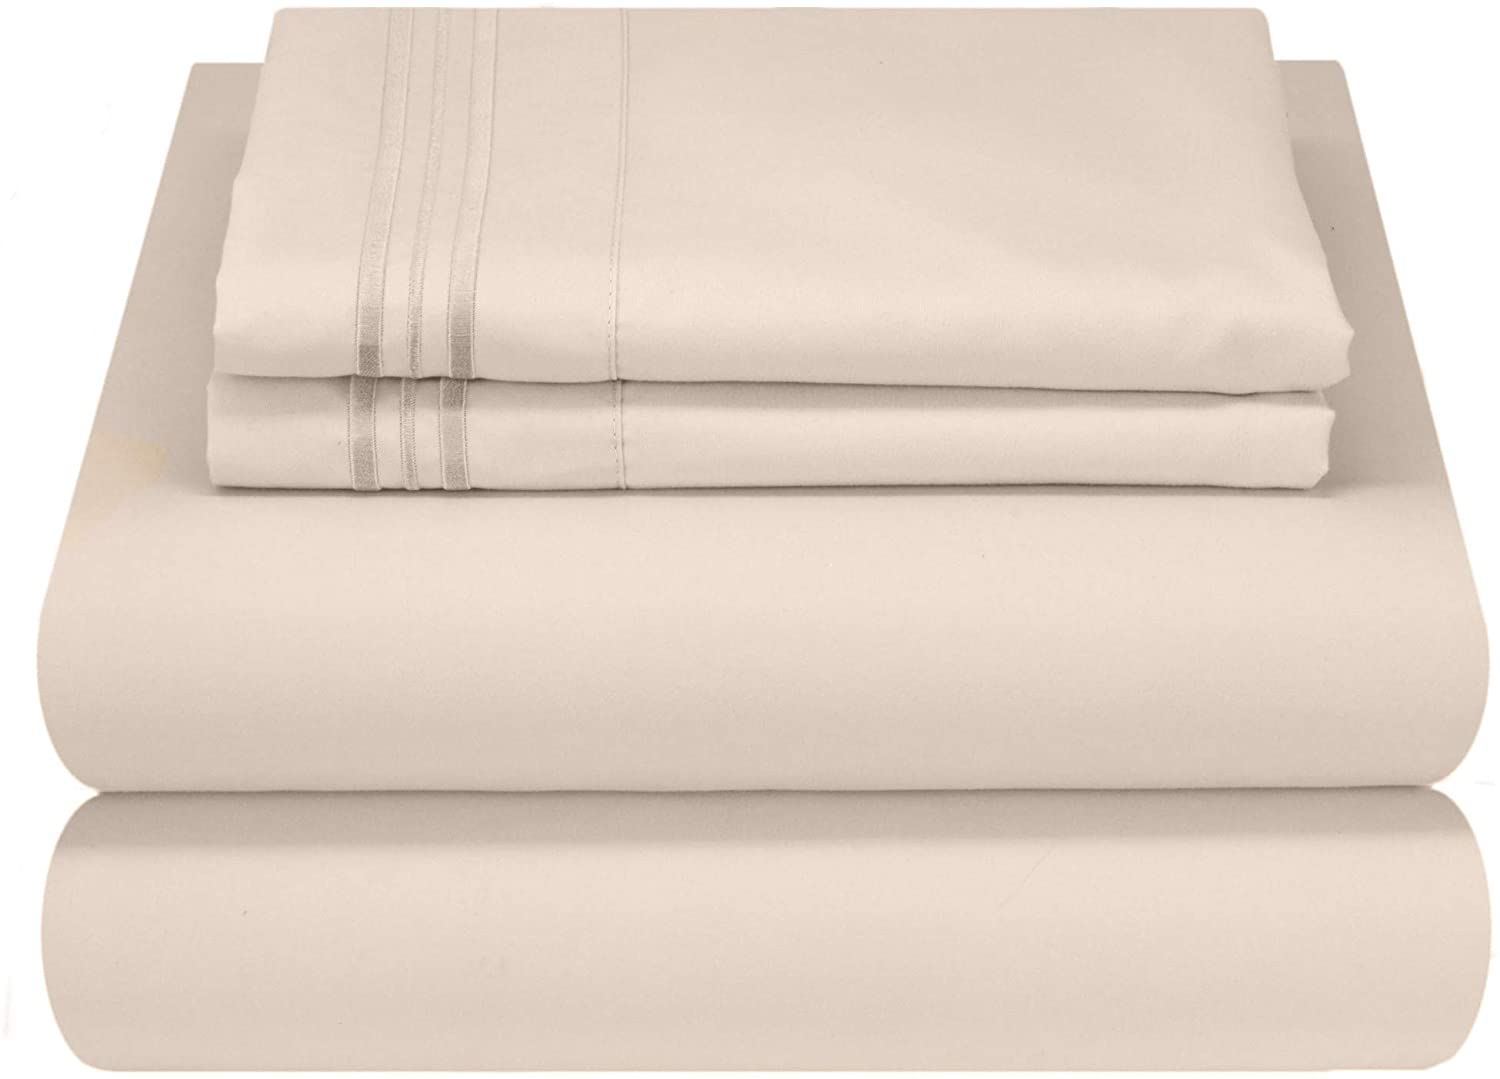 Mezzati Luxury Bed Sheet Set - Soft and Comfortable 1800 Prestige Collection - Brushed Microfiber Bedding (Beige, Twin XL Size)